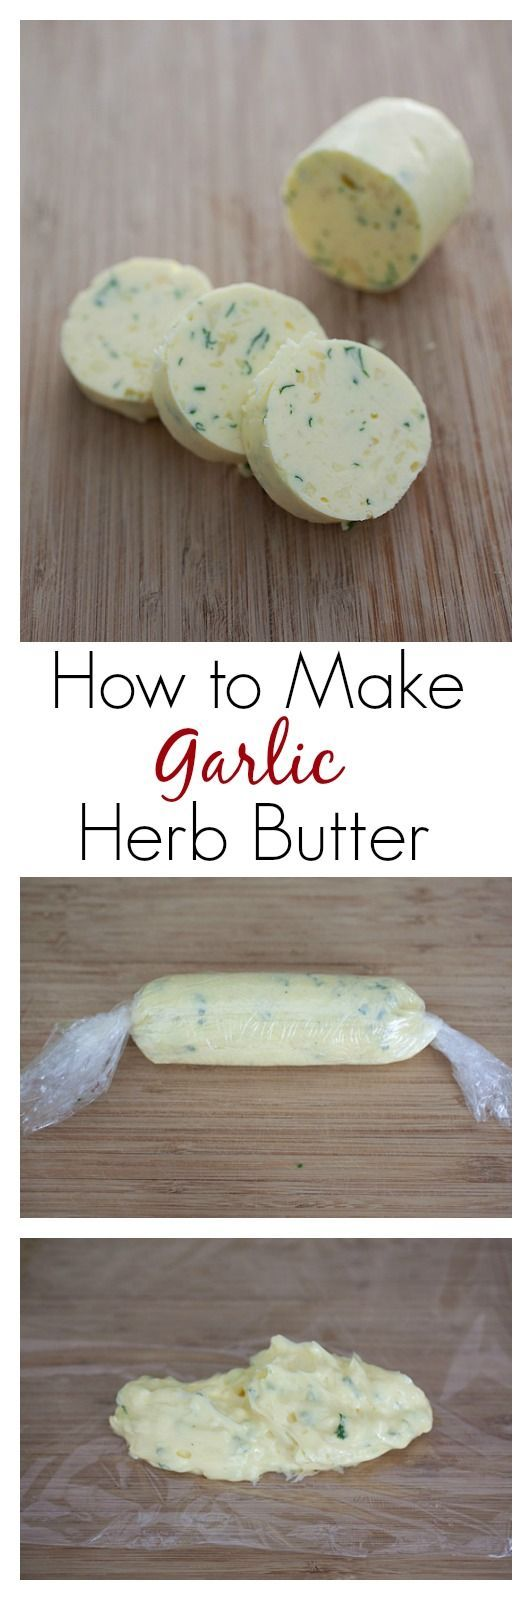 How to make Garlic Herb Butter. Learn the picture step-by-step, so easy to make and you can make so many dishes from it | rasamalaysia.com | #garlic #butter